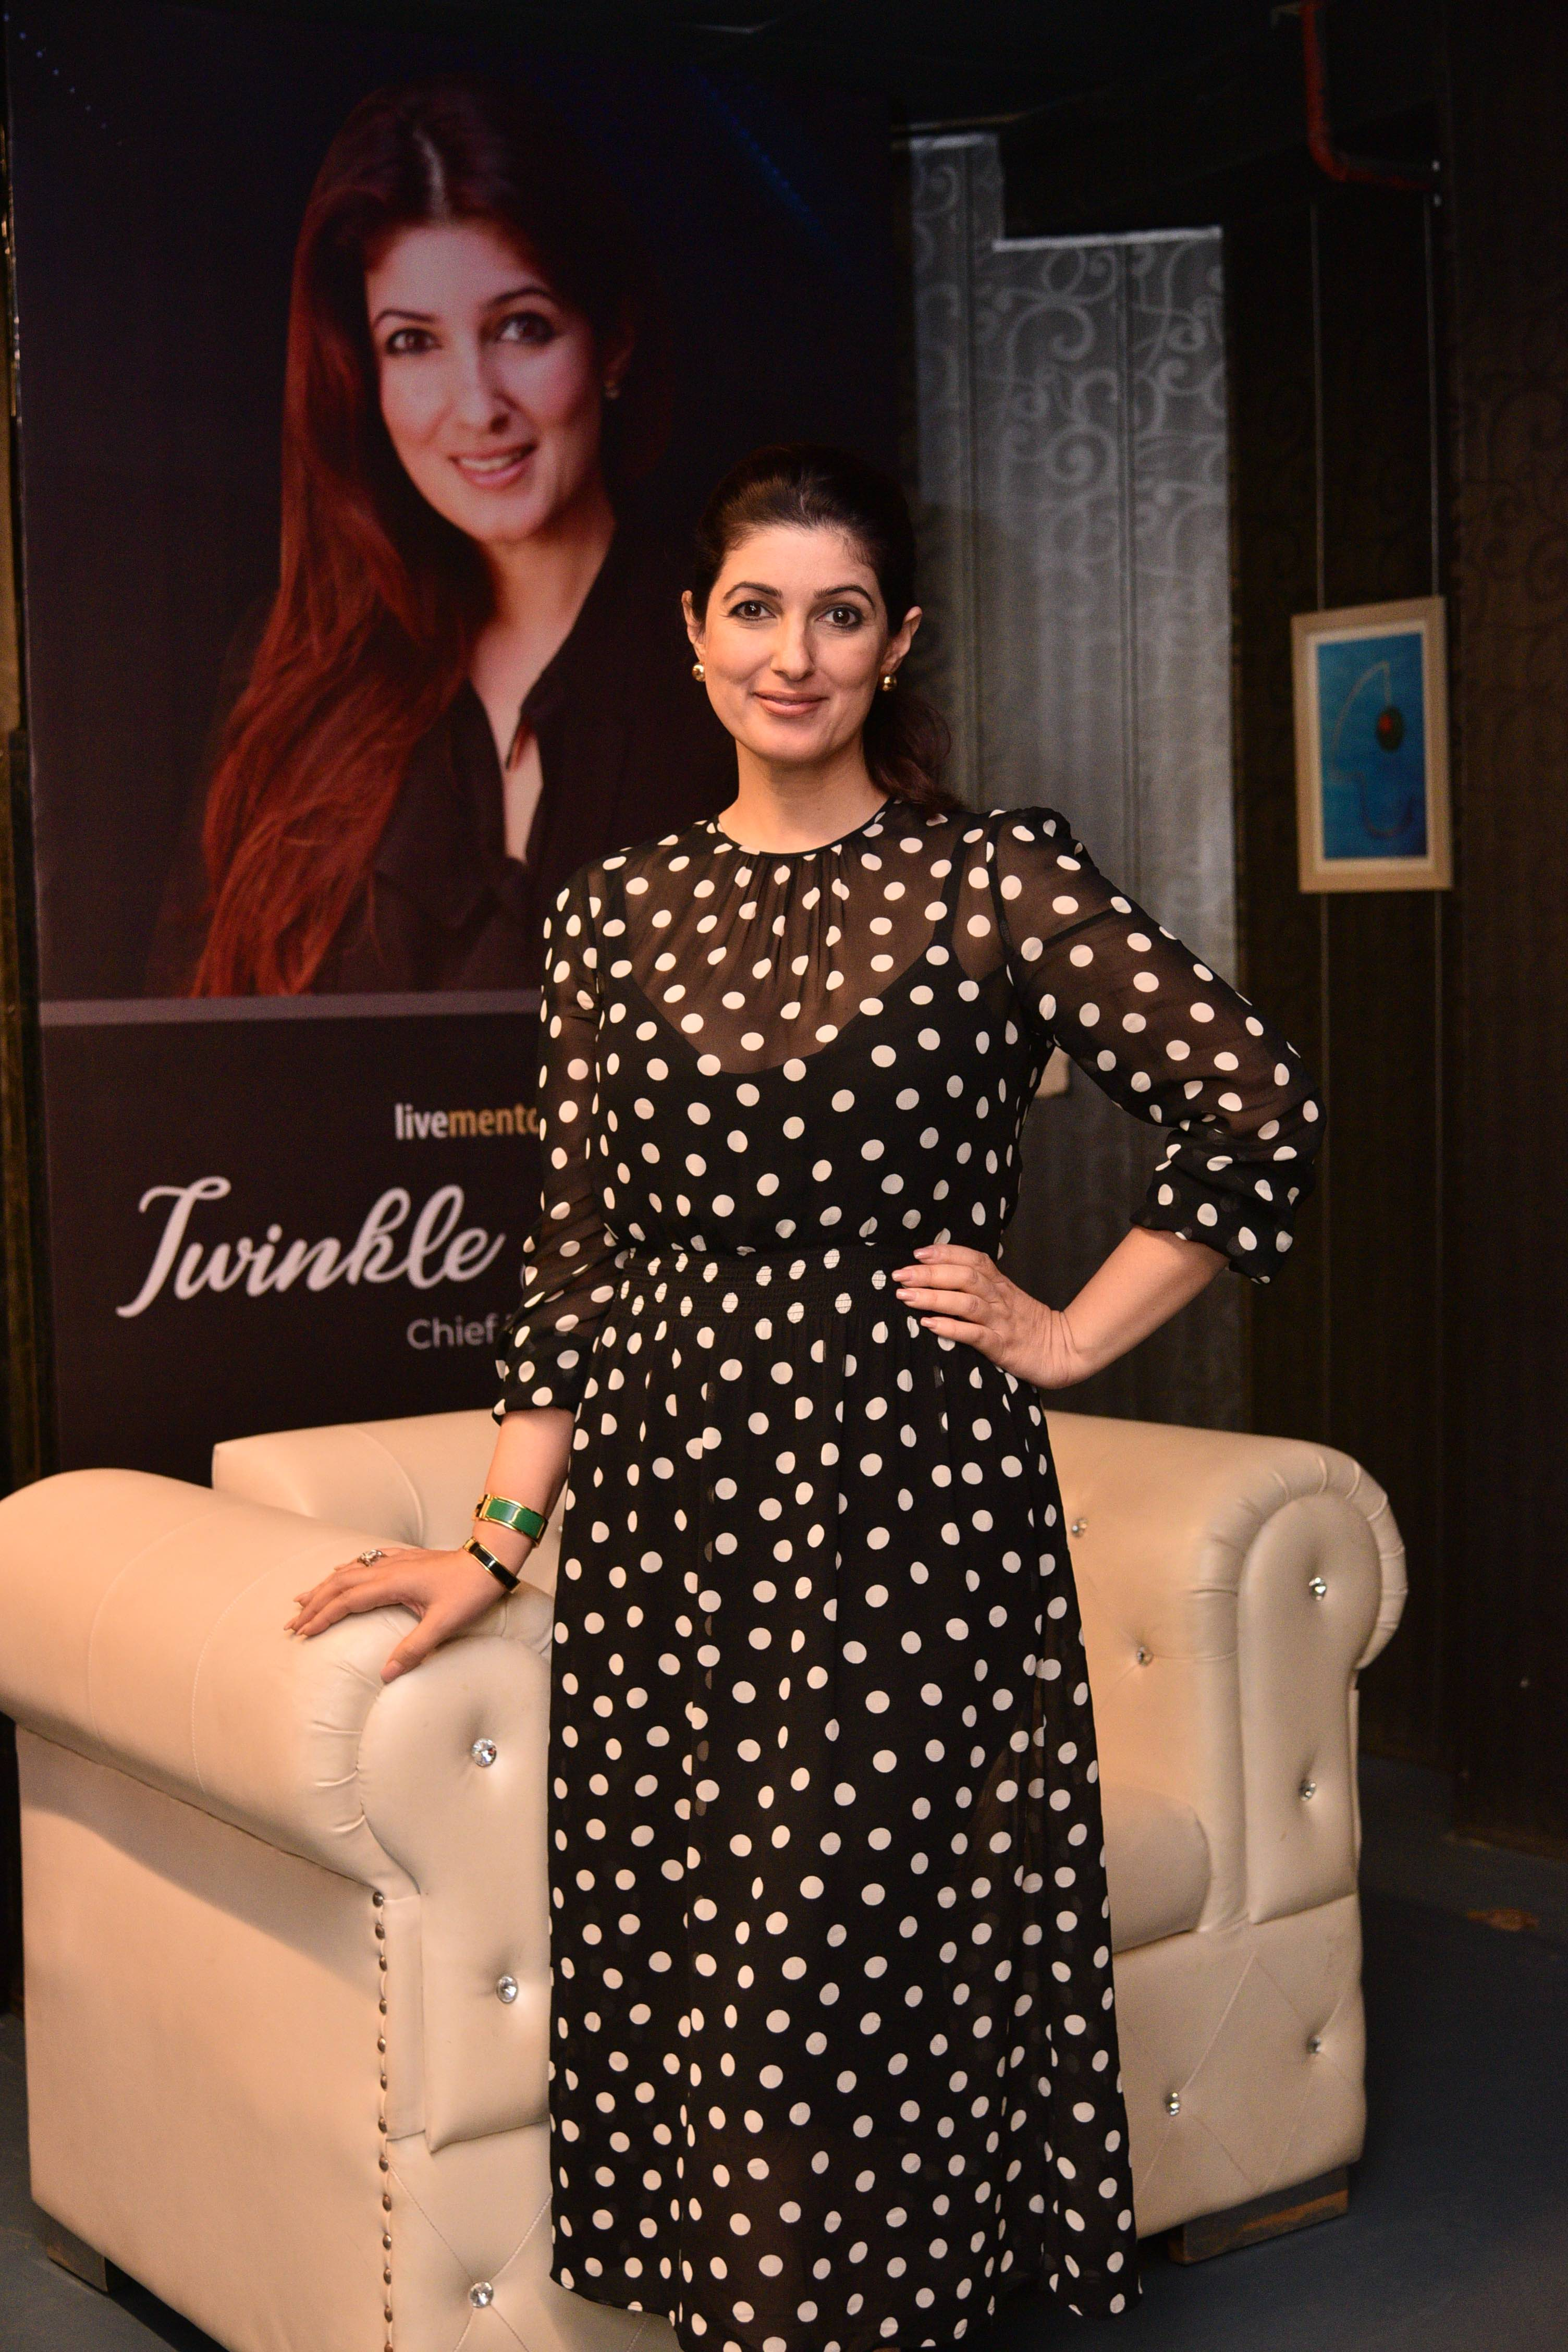 INIFD Academy of Interiors Chief MentorTwinkleKhanna conducts Mentor Class